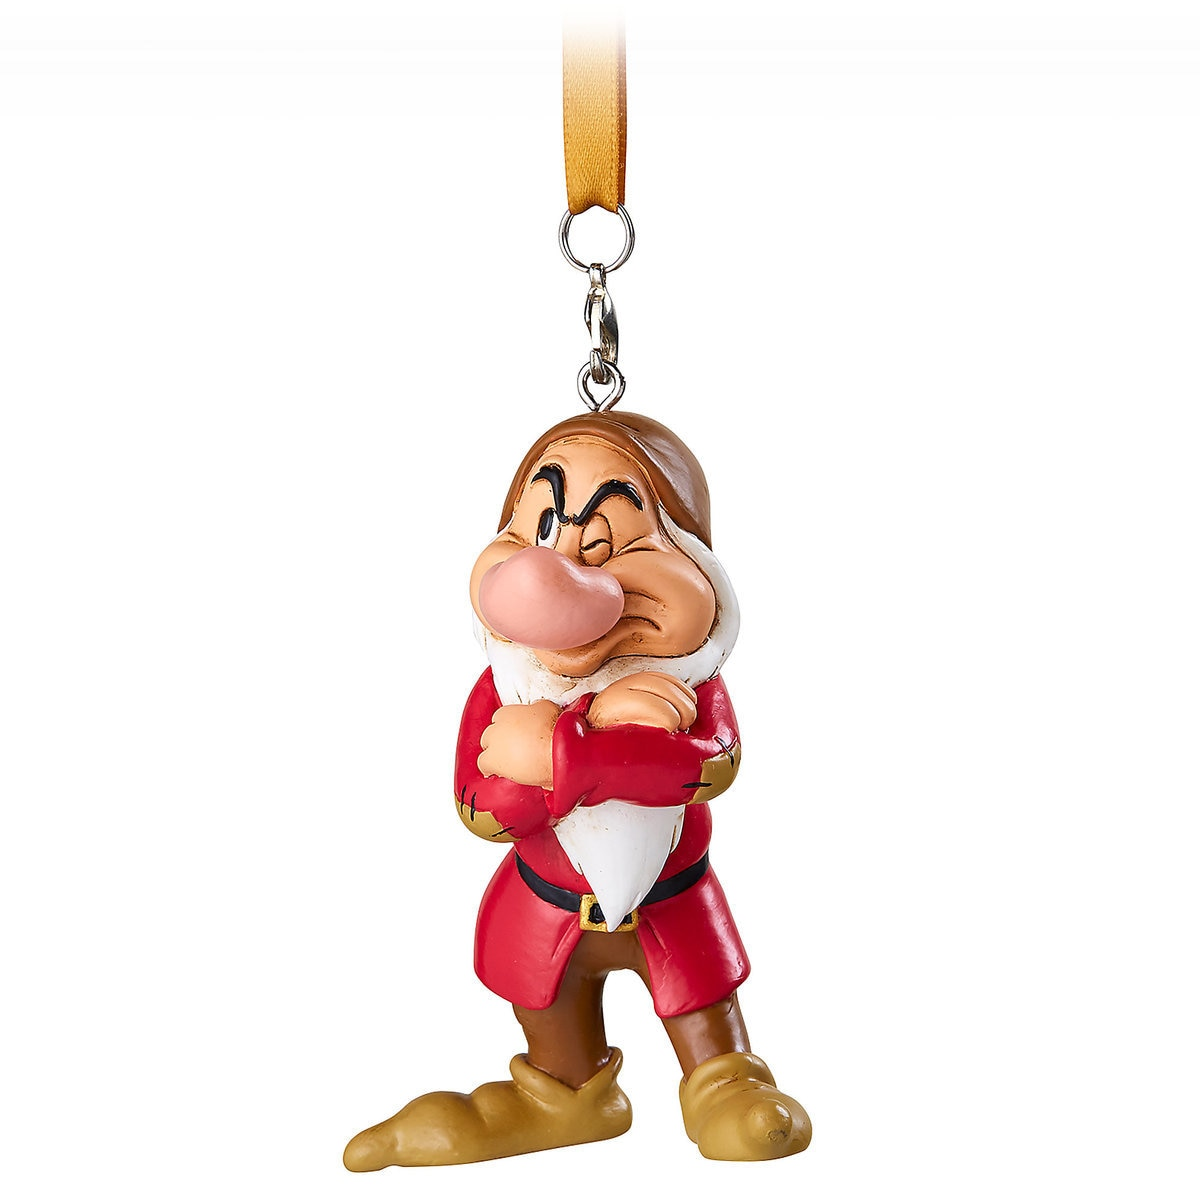 372cf48c488 Product Image of Grumpy Figural Ornament - Snow White and the Seven Dwarfs    1